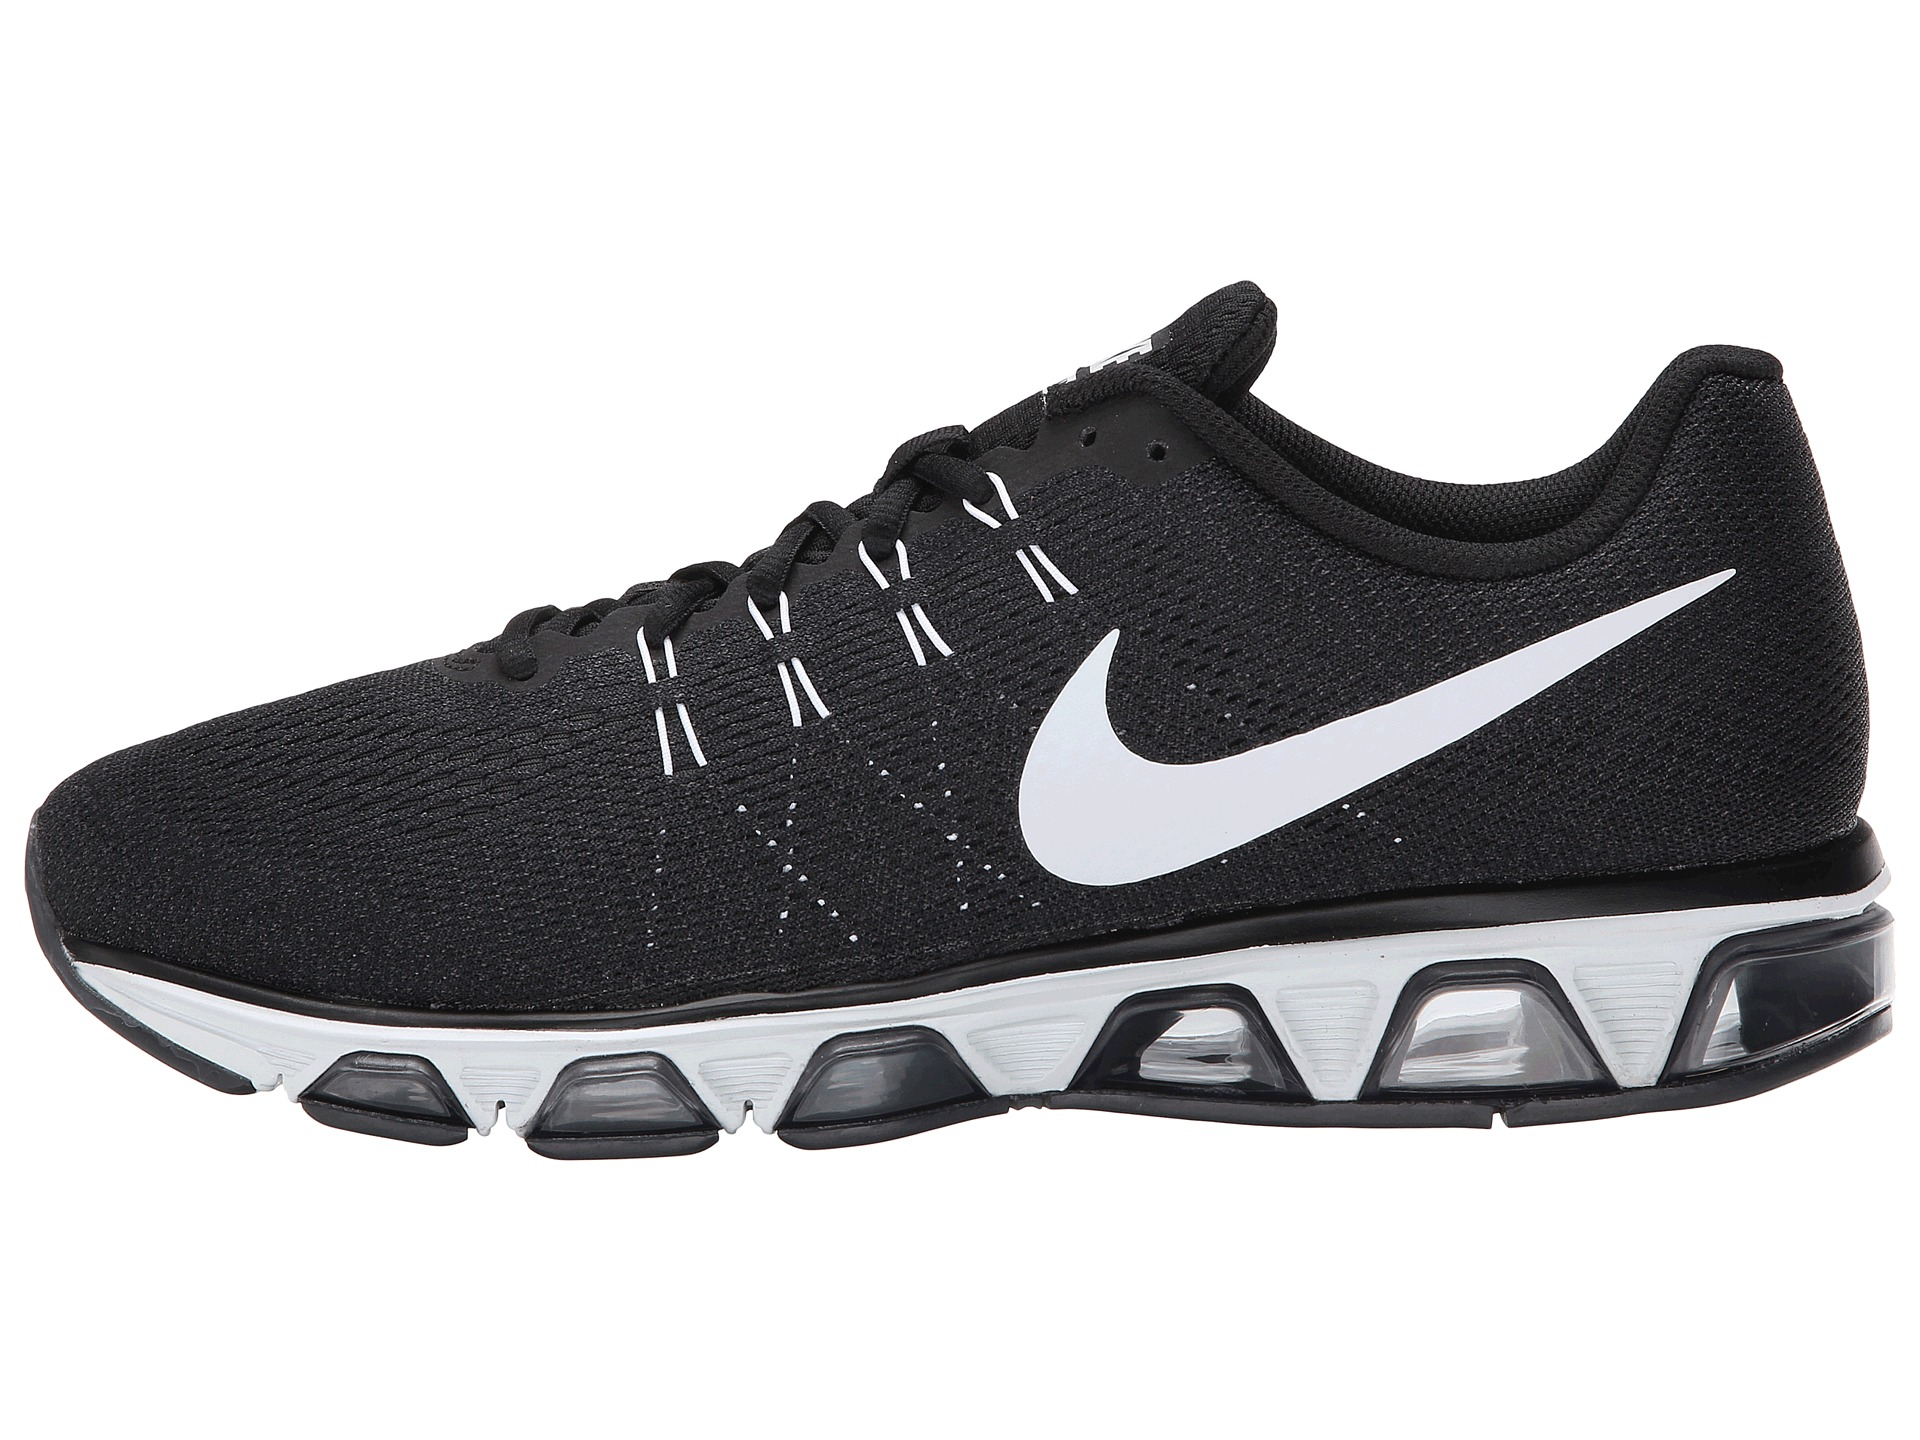 Nike Air Max Tailwind 8 In Black For Men Lyst